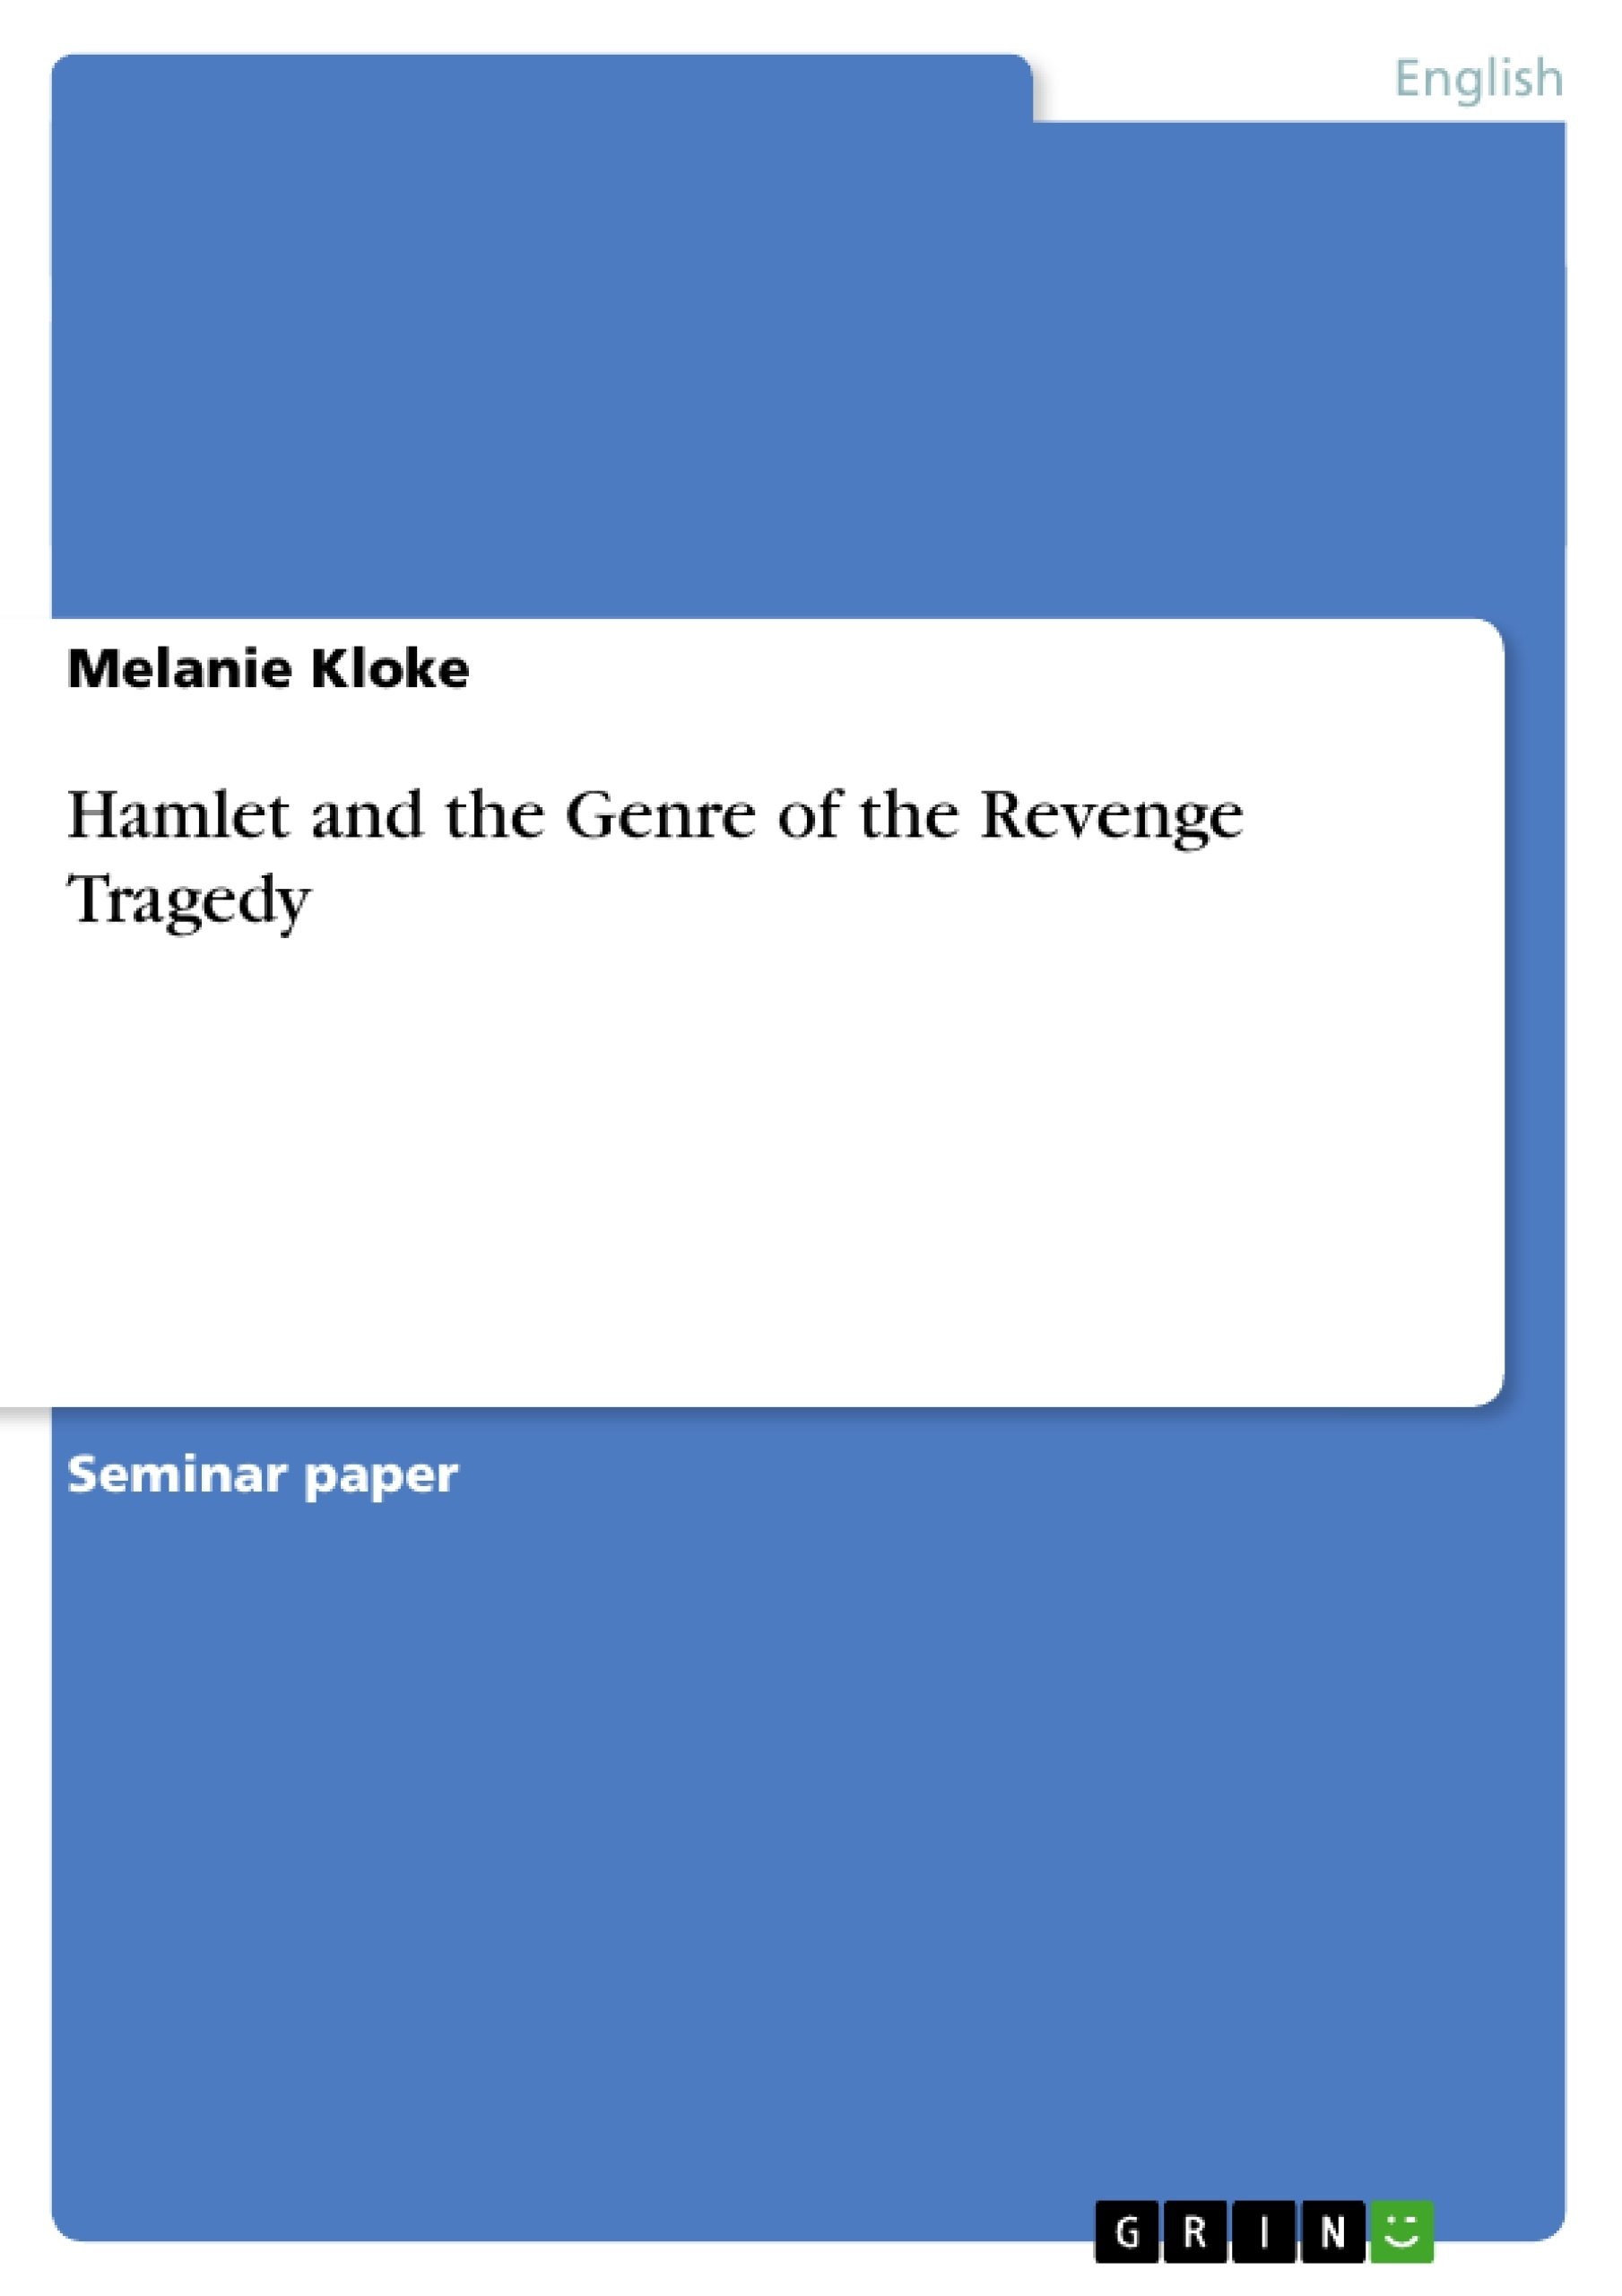 Title: Hamlet and the Genre of the Revenge Tragedy